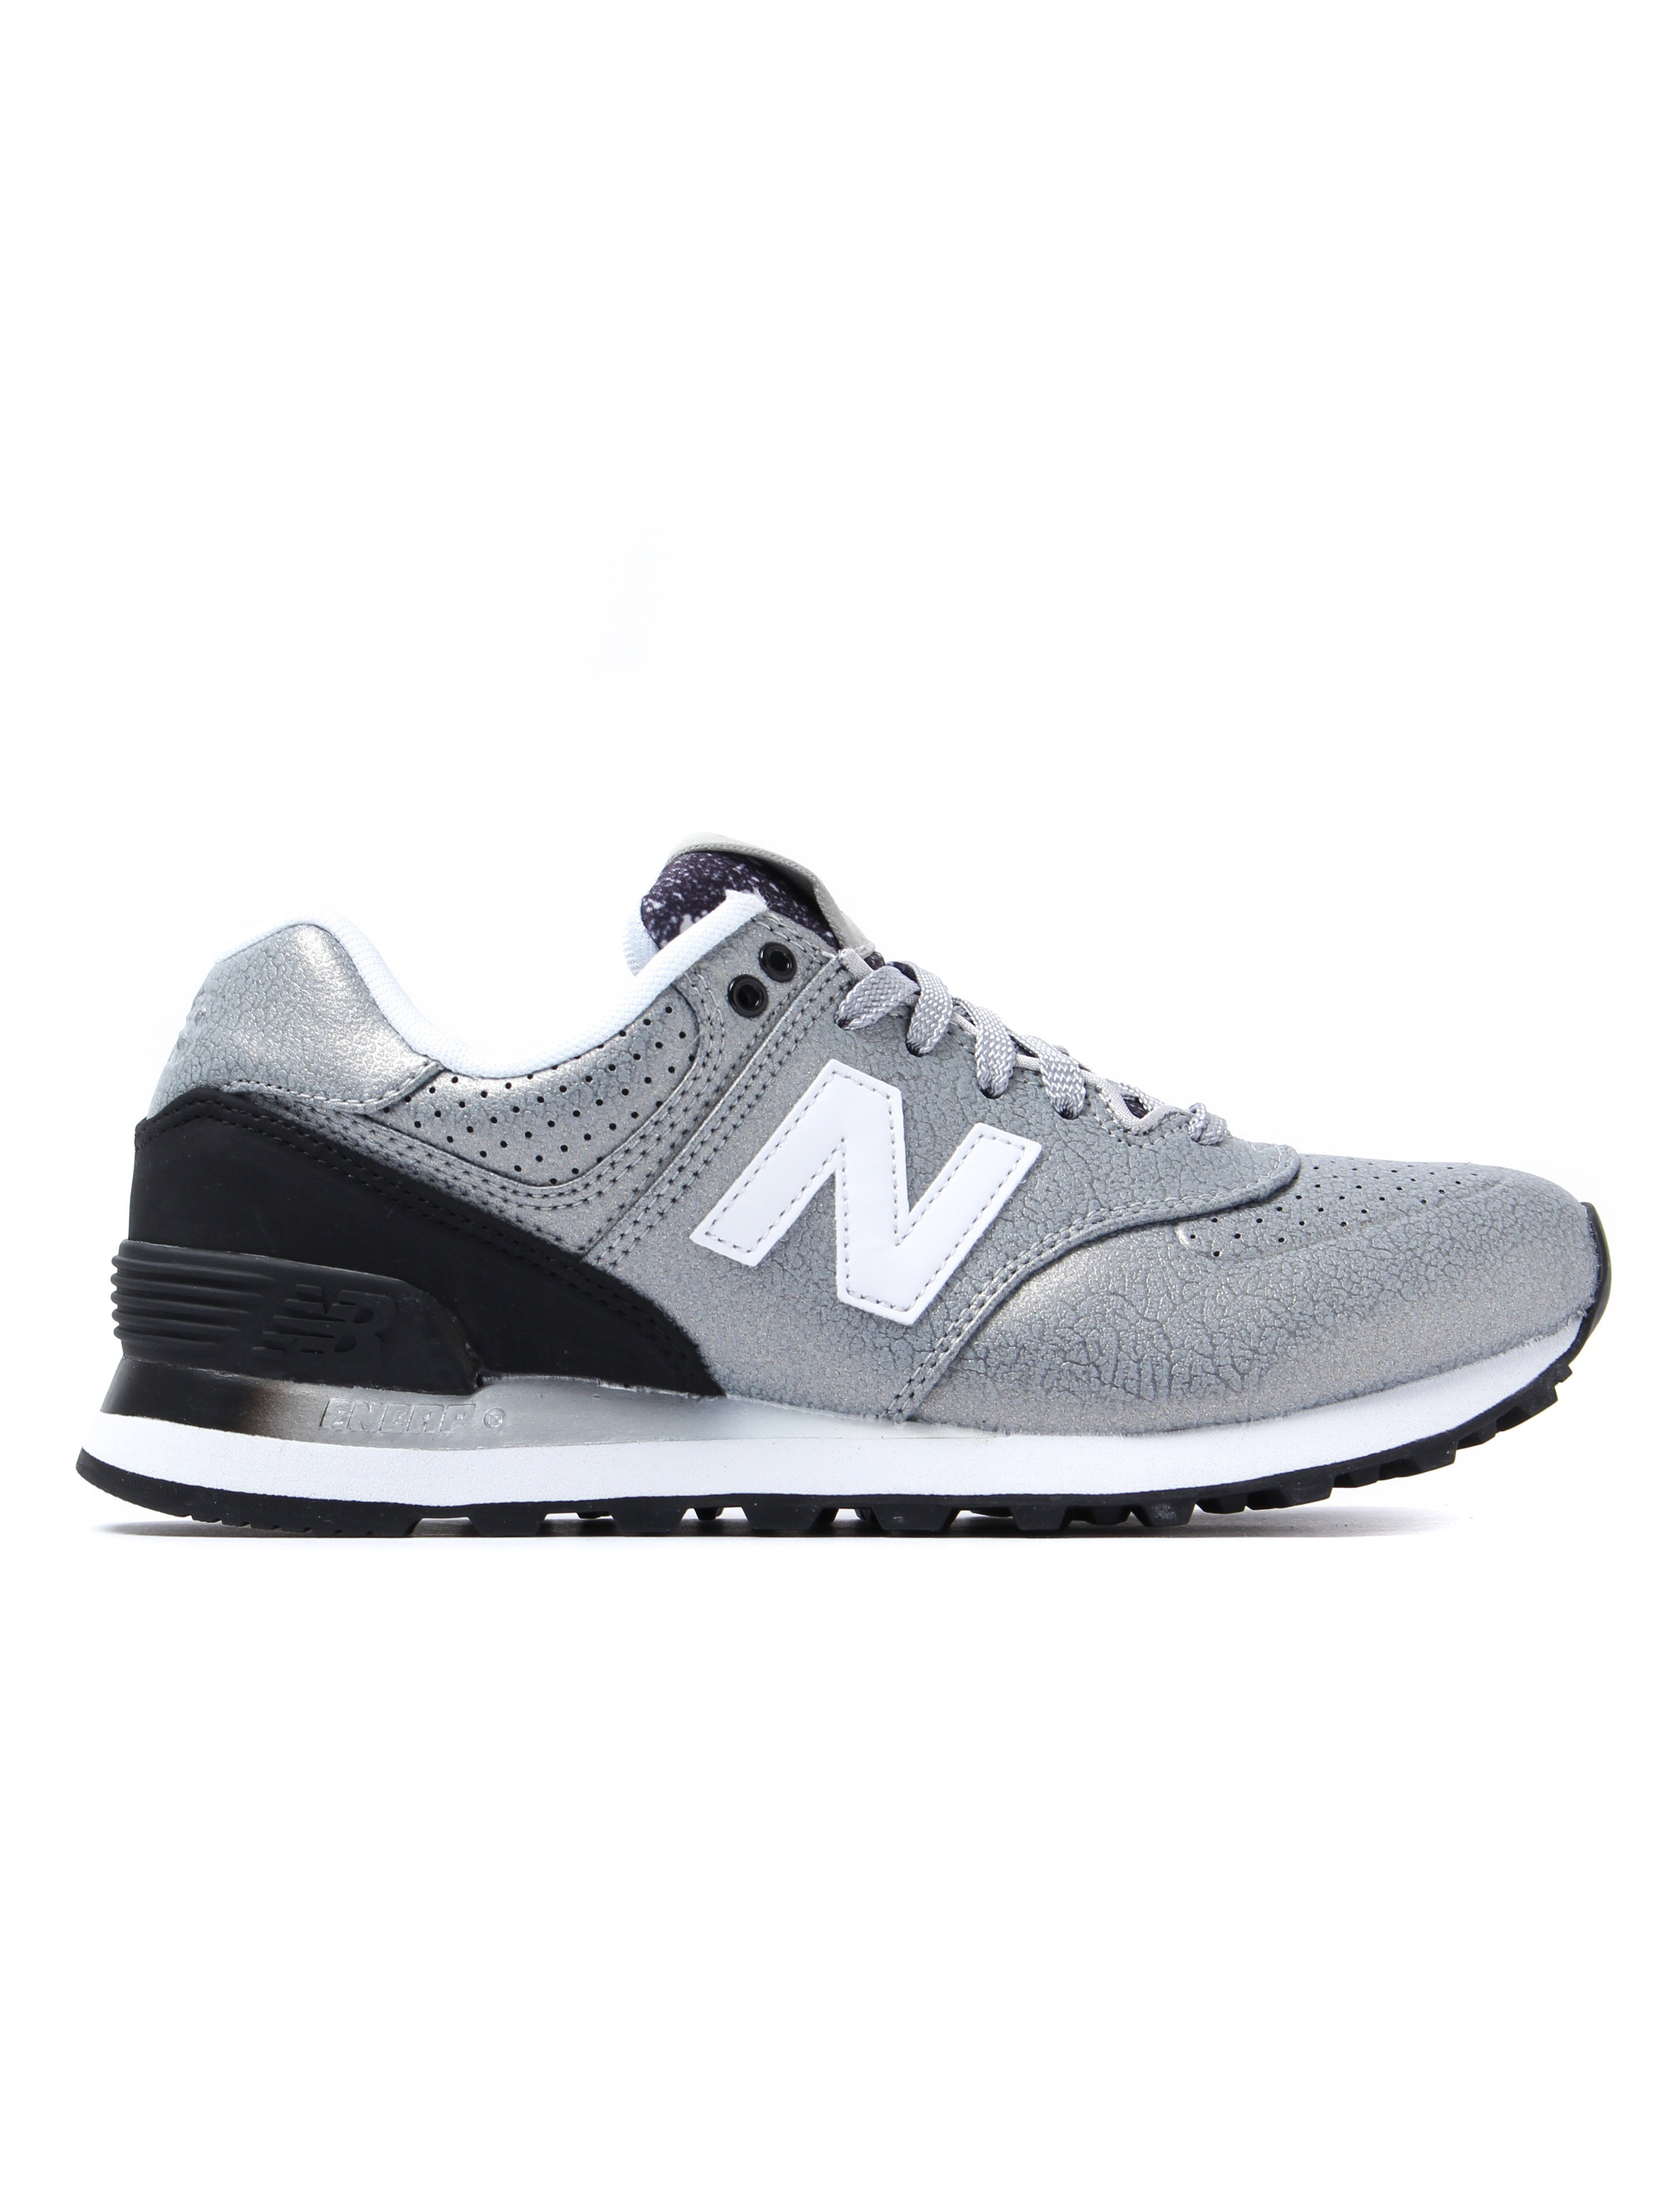 New Balance Women's 574 Low Top Trainers - Silver Leather